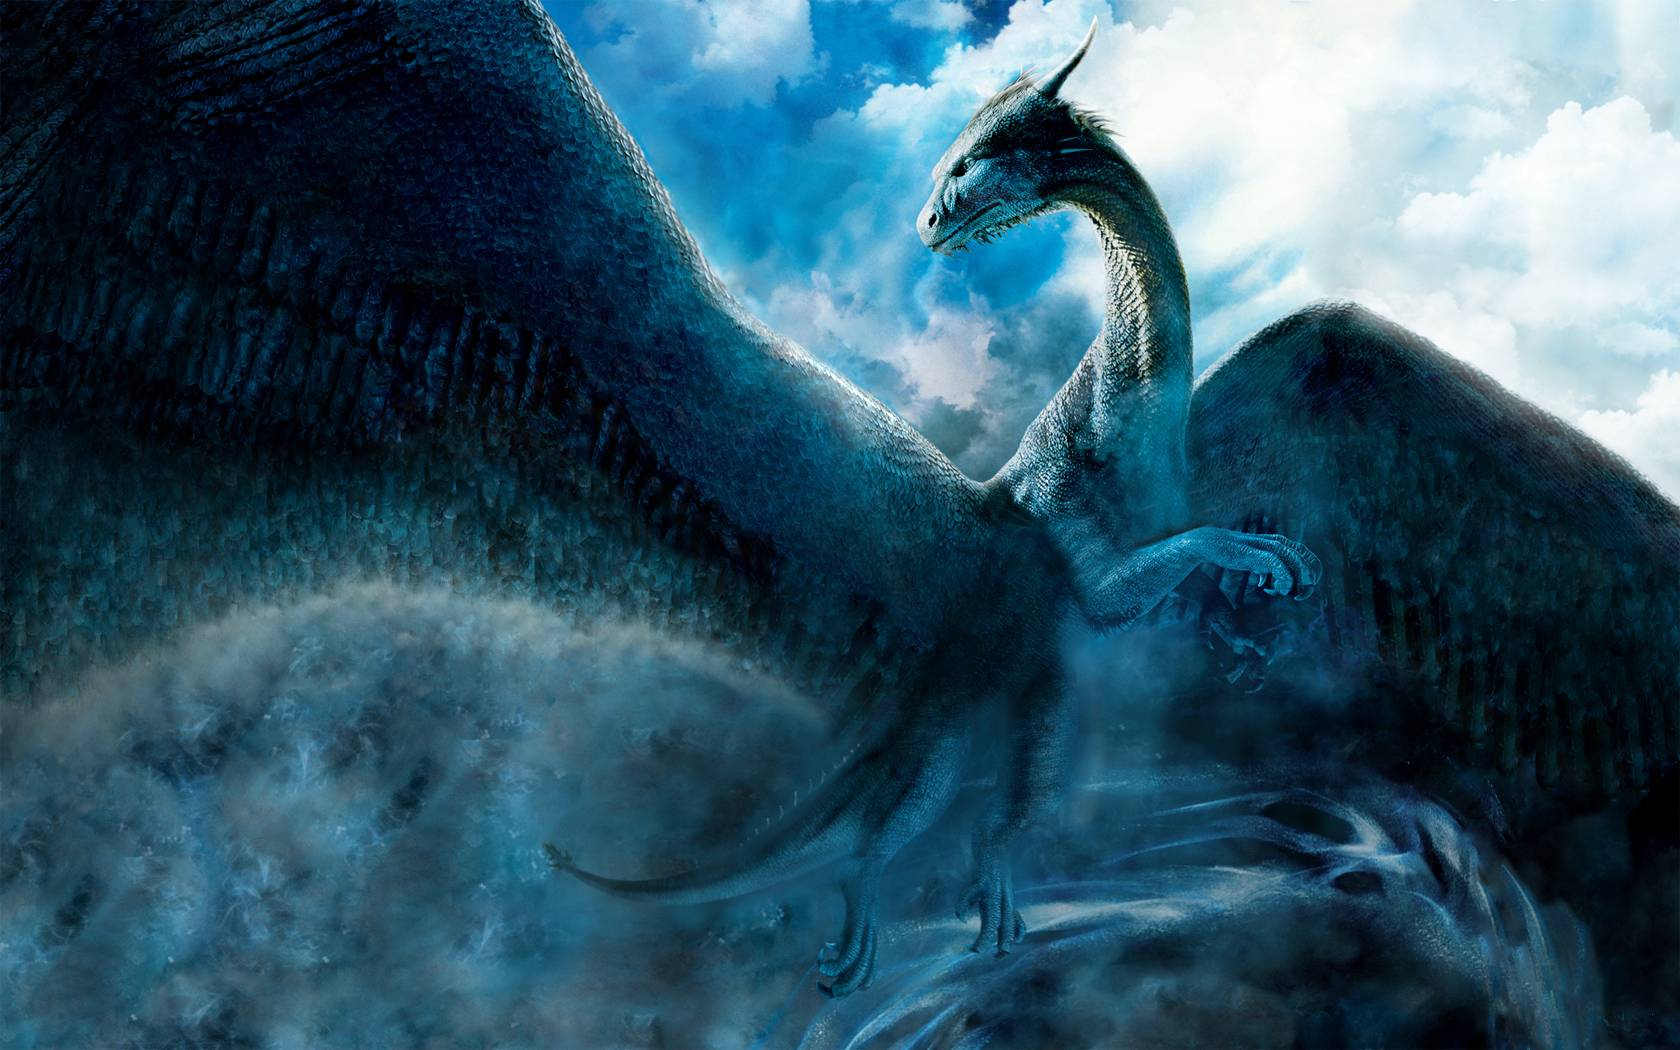 dragon wallpaper widescreen high resolution - photo #36